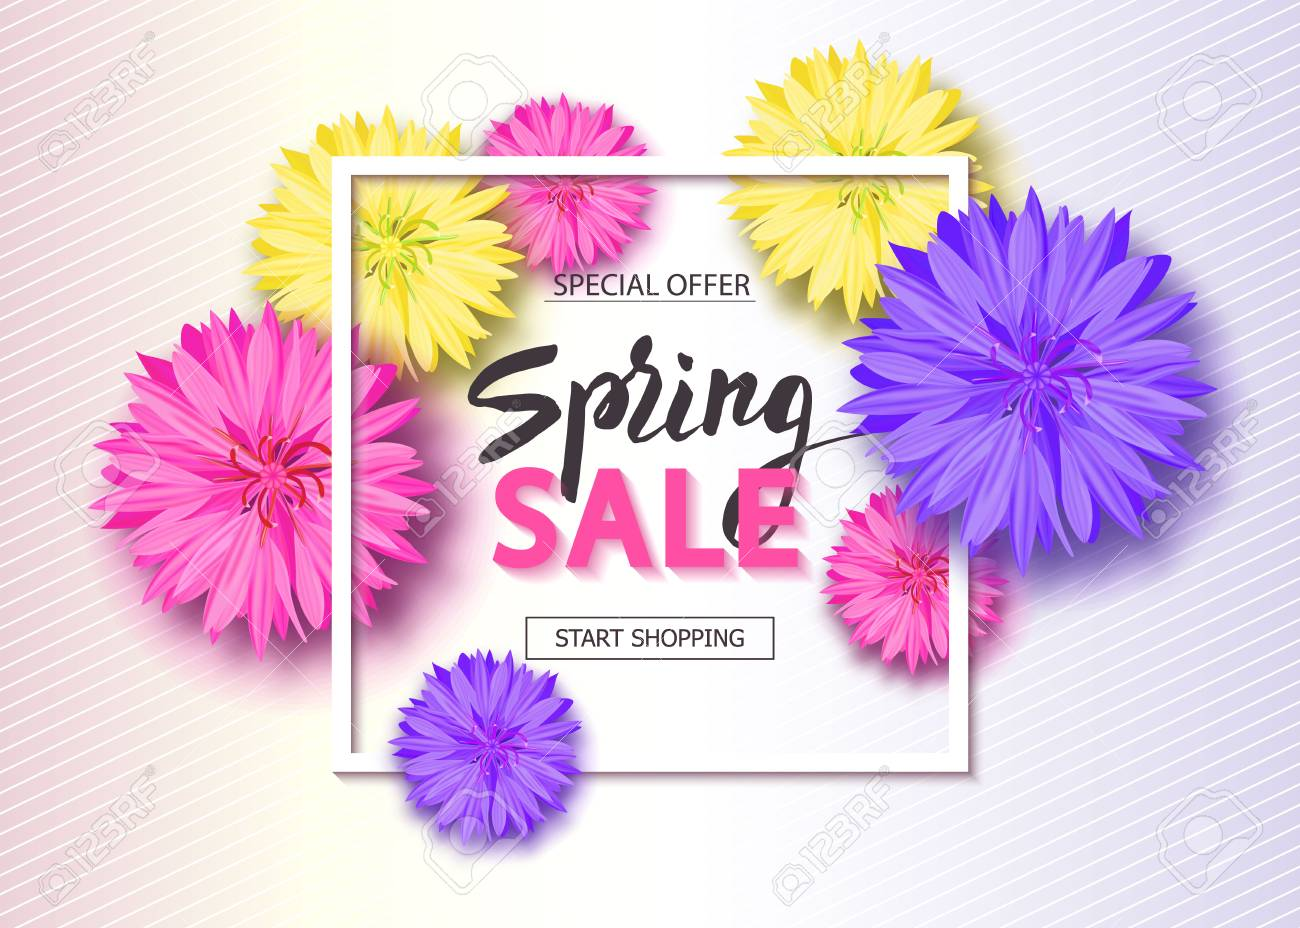 Spring Sale Background With Flowers Season Discount Banner 1300x928